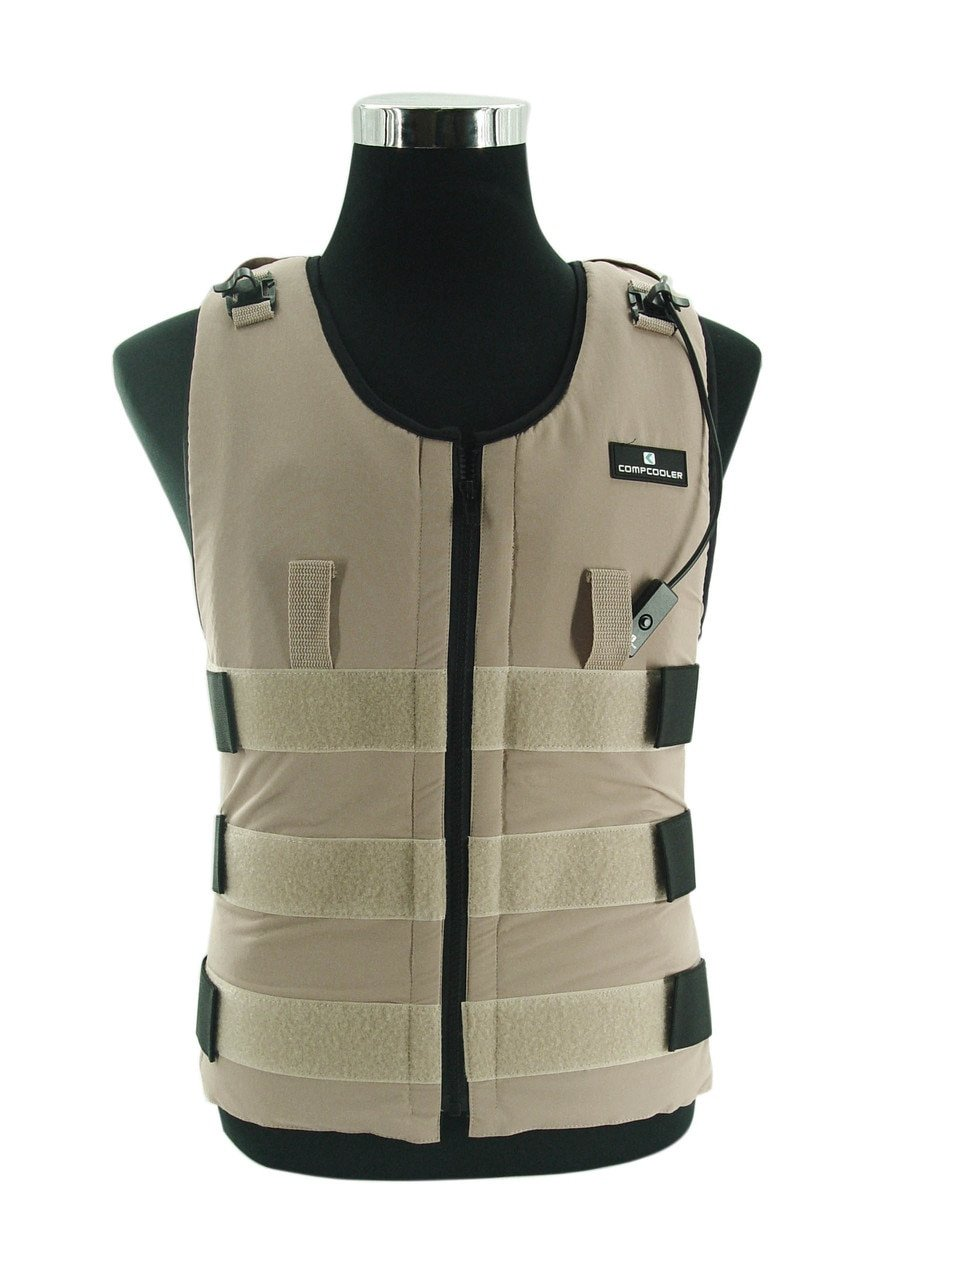 Ice Water Circulating Cooling Vest Tan Detachable Bladder XL-2XL by Compcooler (Image #1)